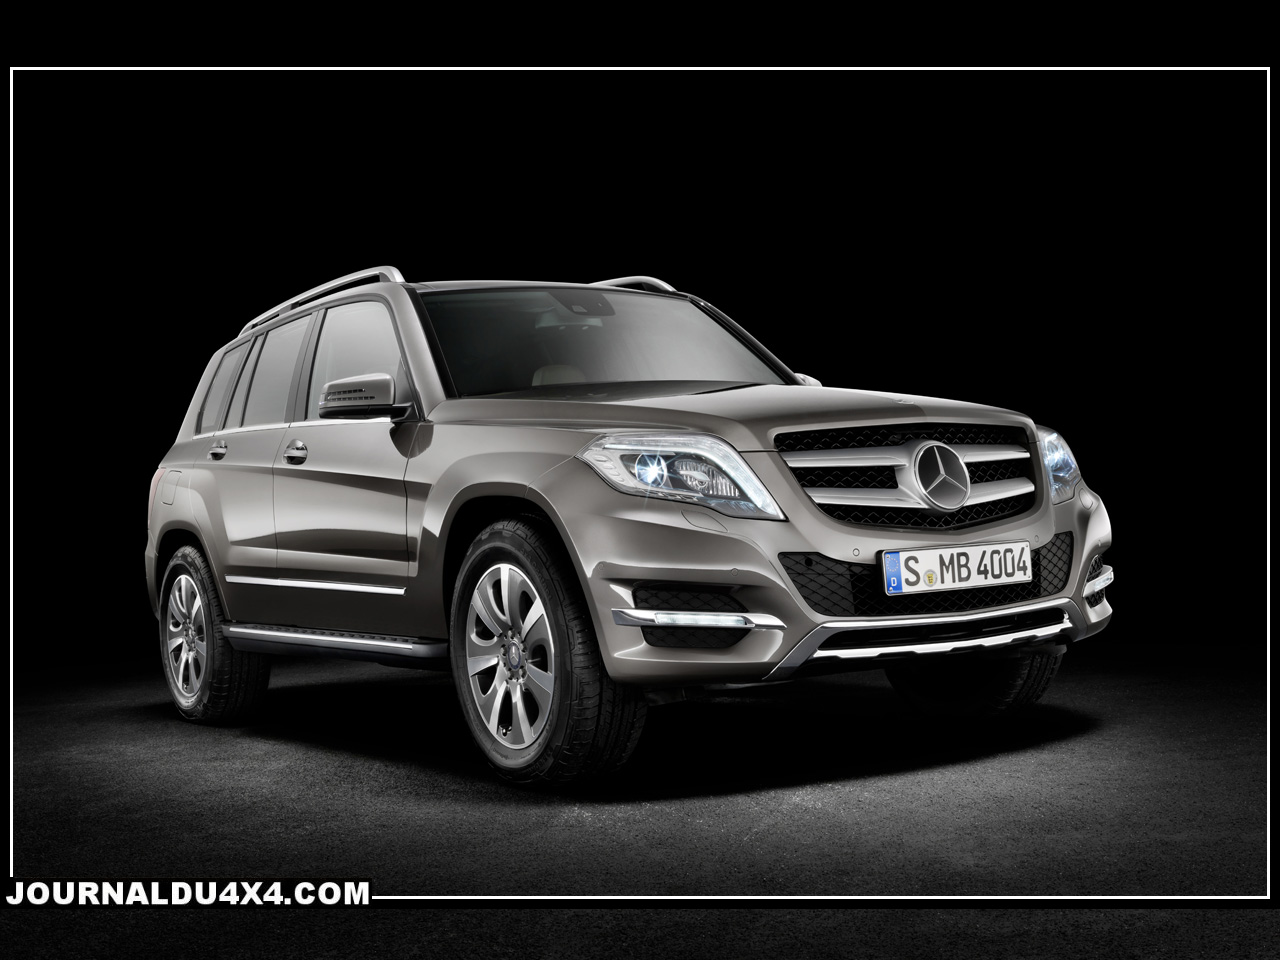 nouveau glk mercedes 2012 magazine 4x4 suv. Black Bedroom Furniture Sets. Home Design Ideas